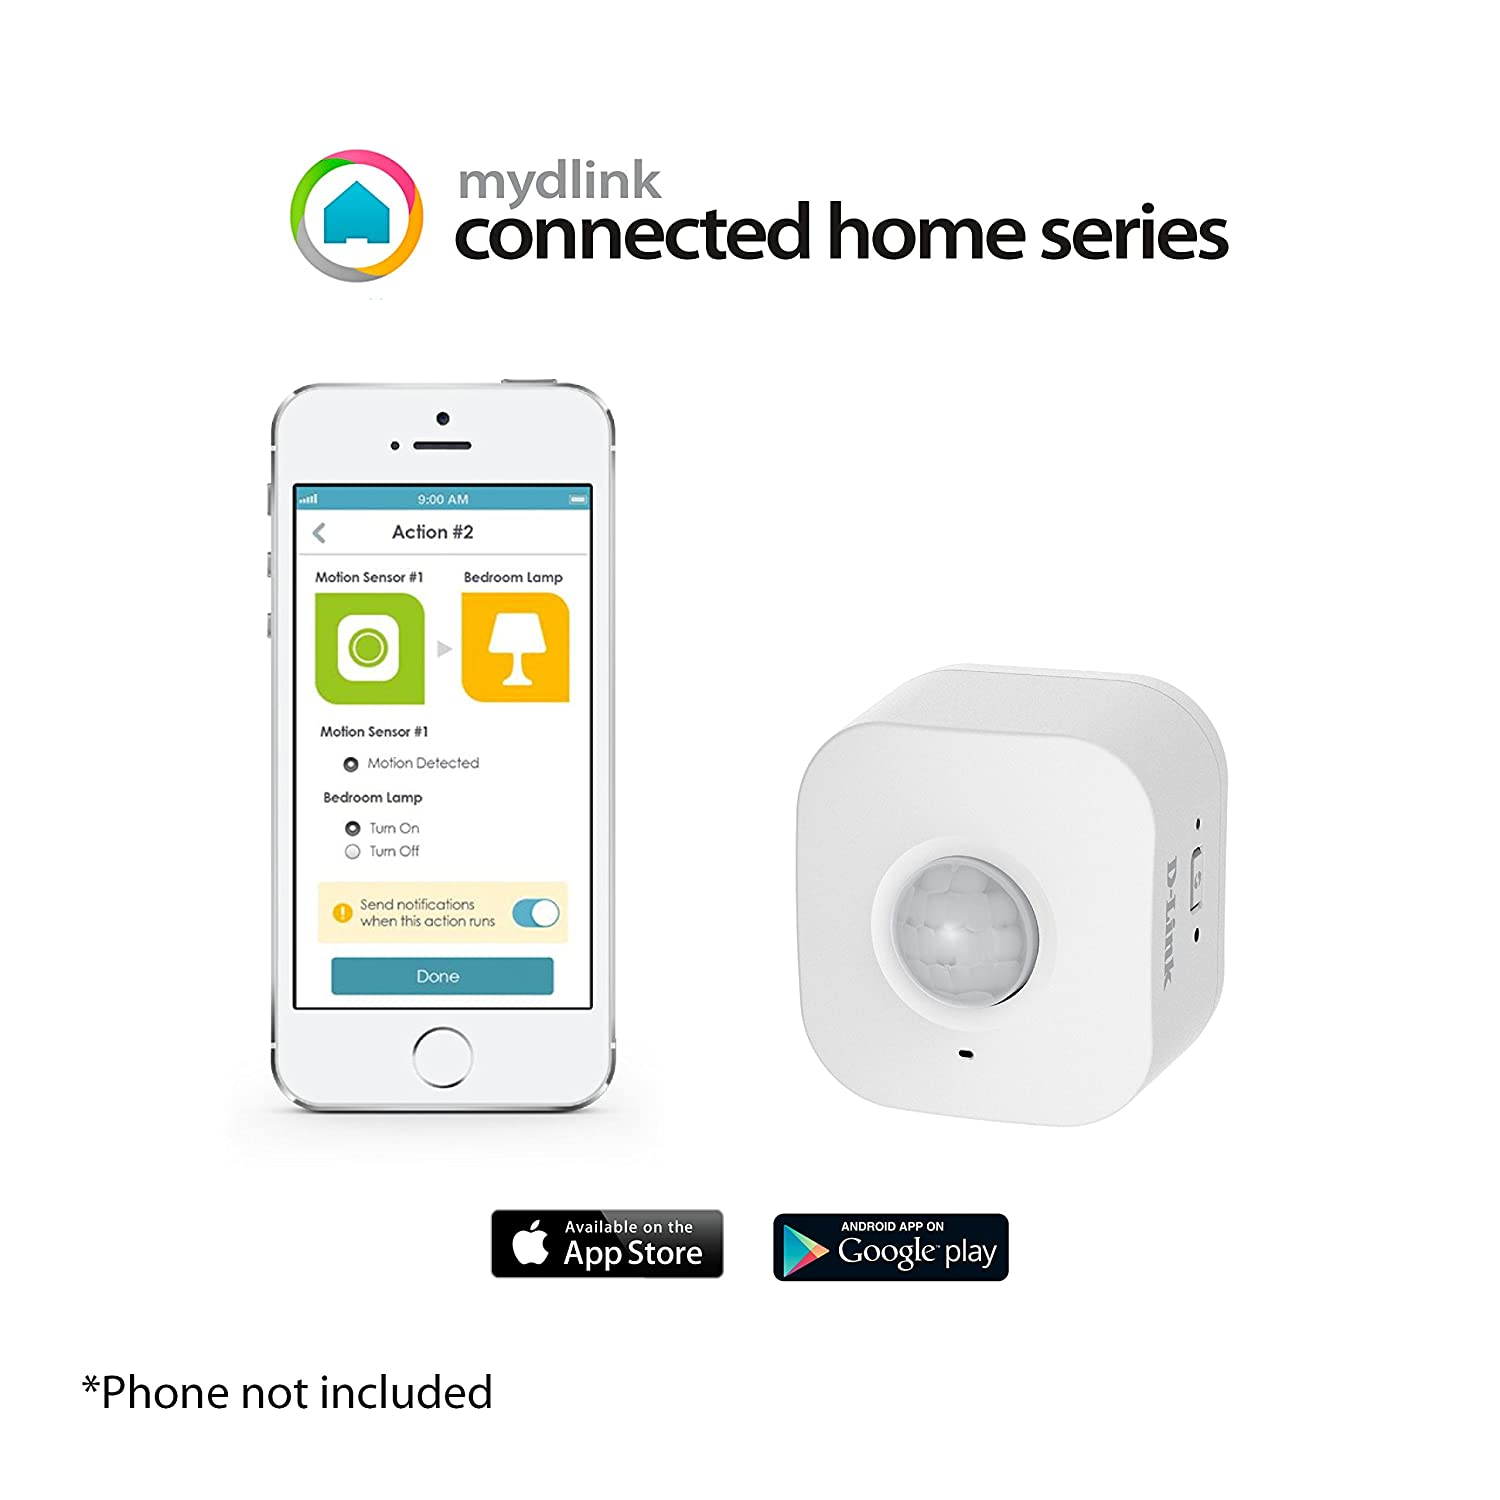 D Link Dch S150 Mydlink Wi Fi Smart Motion Sensor Very Basic Tracking With 2 Pir Sensors Lucky Larry Camera Photo